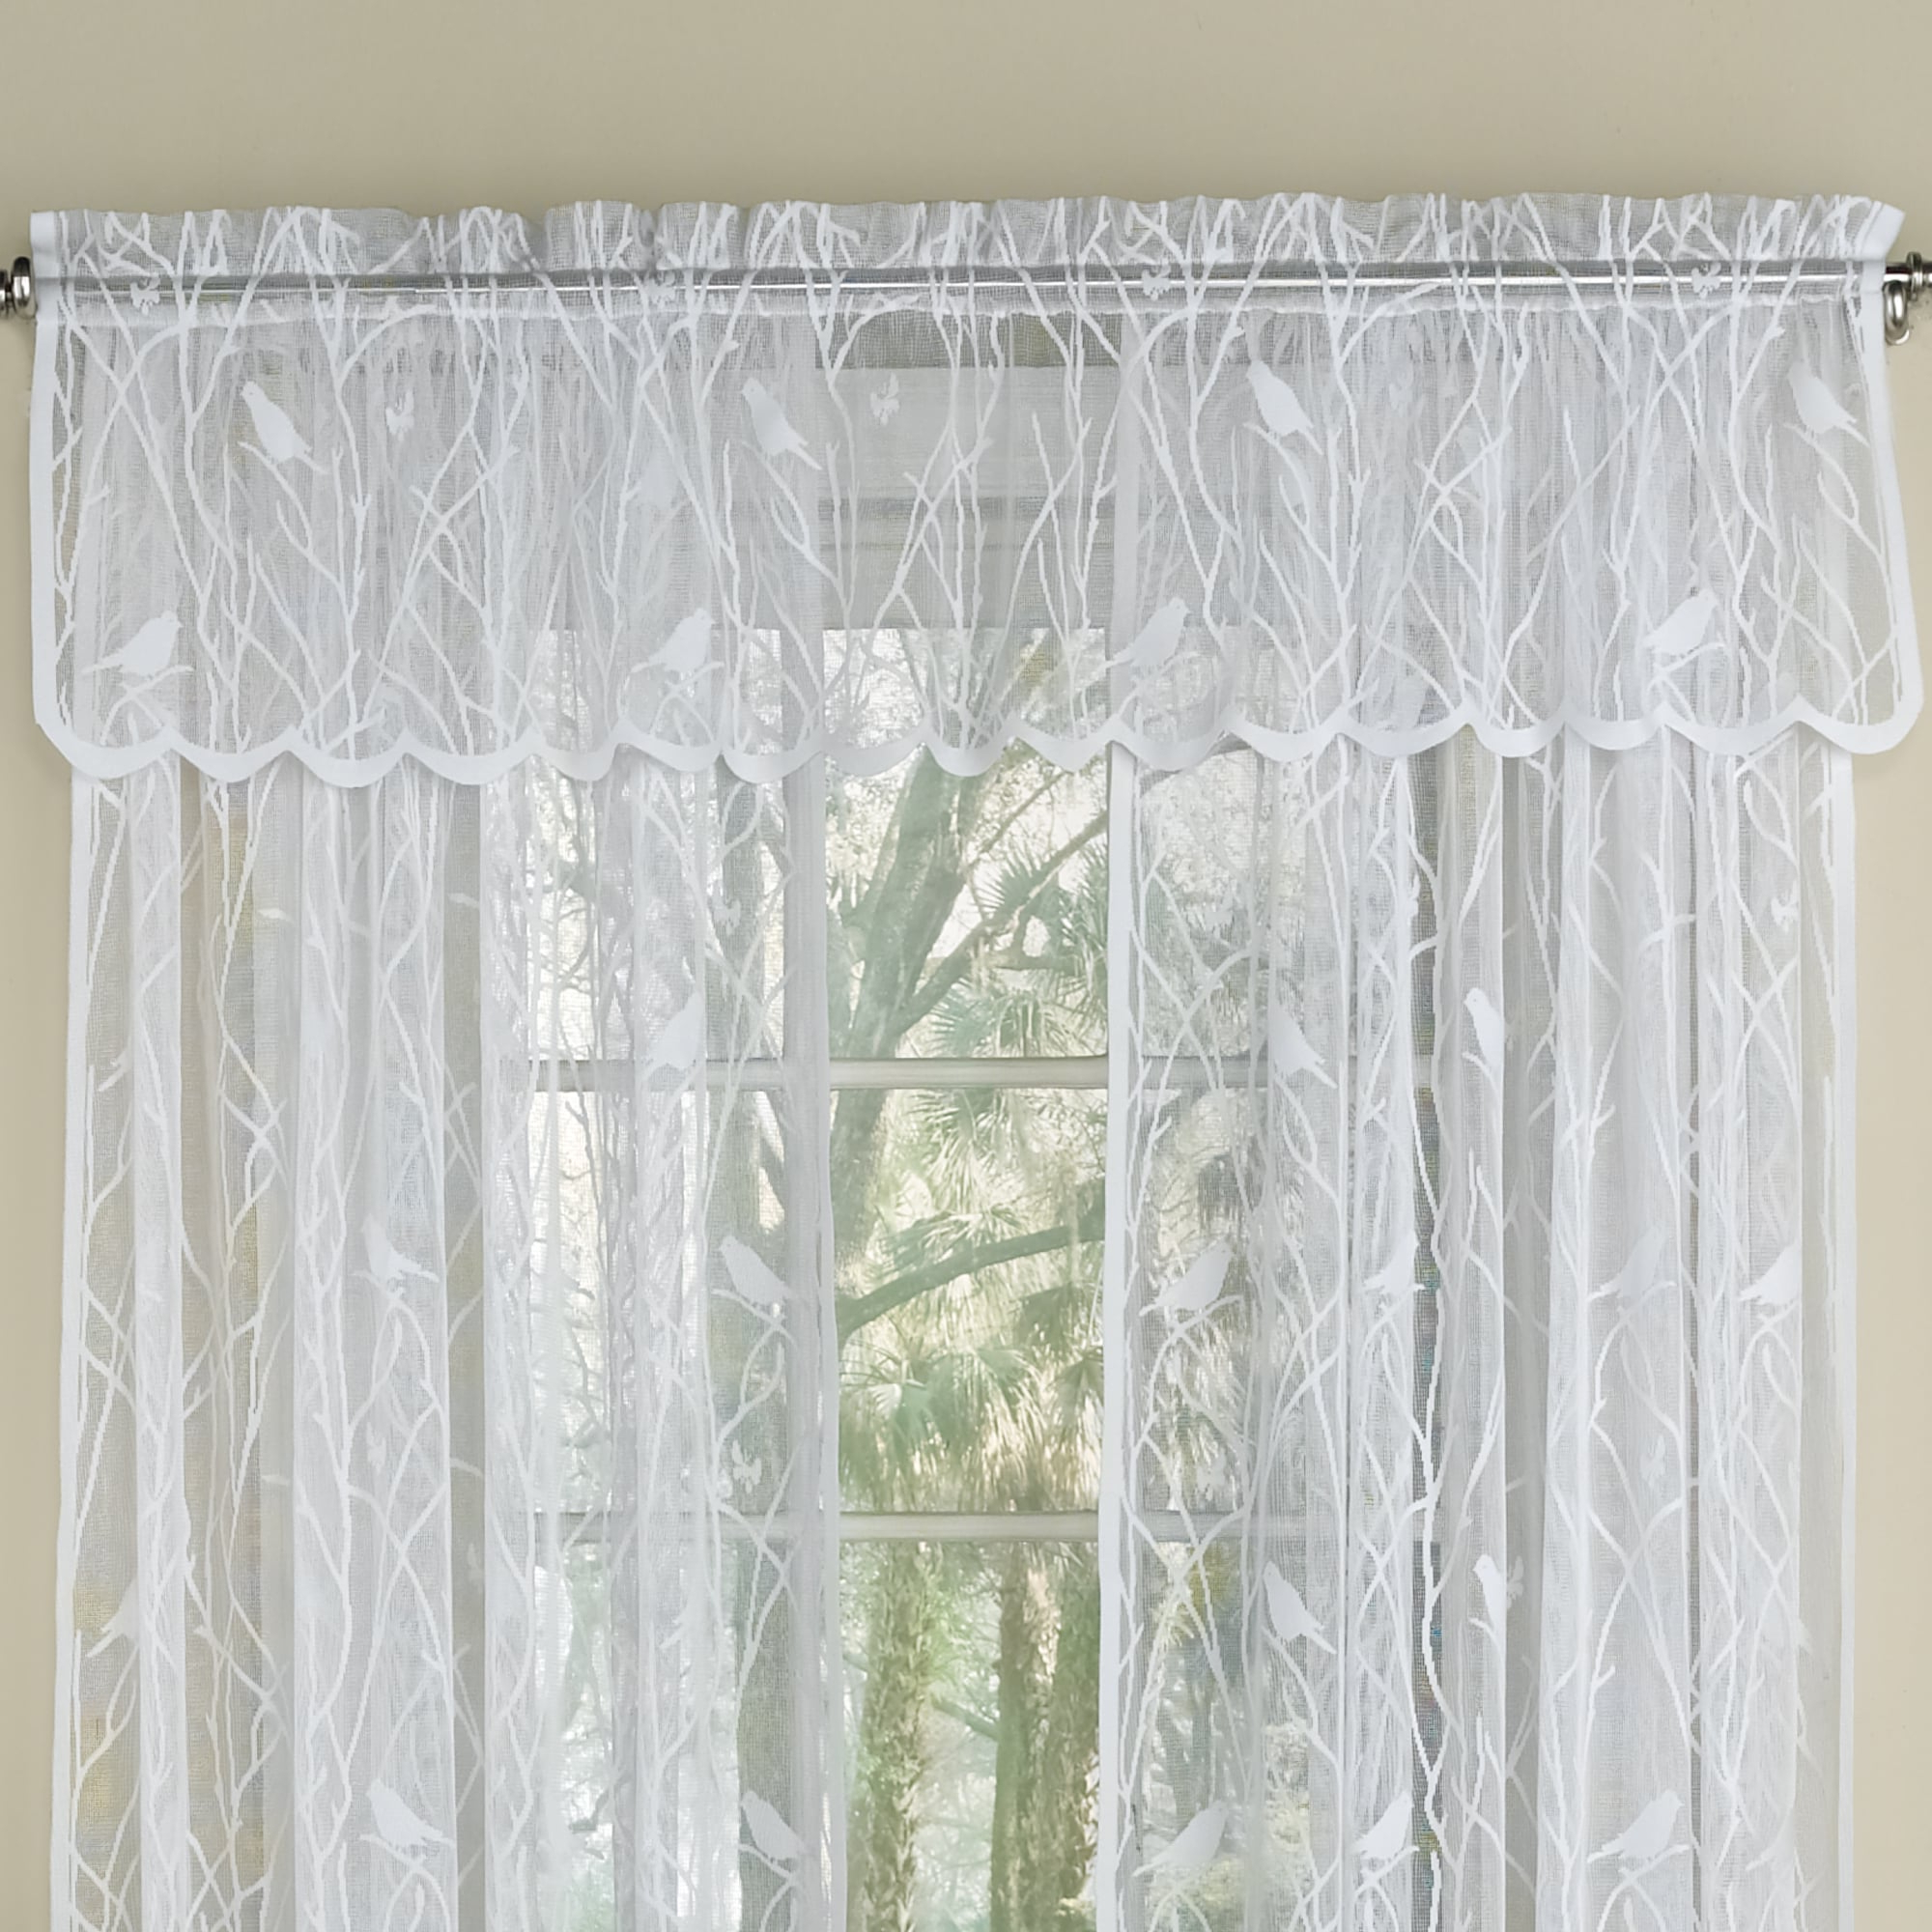 Current White Knit Lace Bird Motif Window Curtain Tiers For Sweet Home Collection White Knit Lace Bird Motif Window Curtain Tiers,  Valance And Swag Pair Options (View 2 of 20)